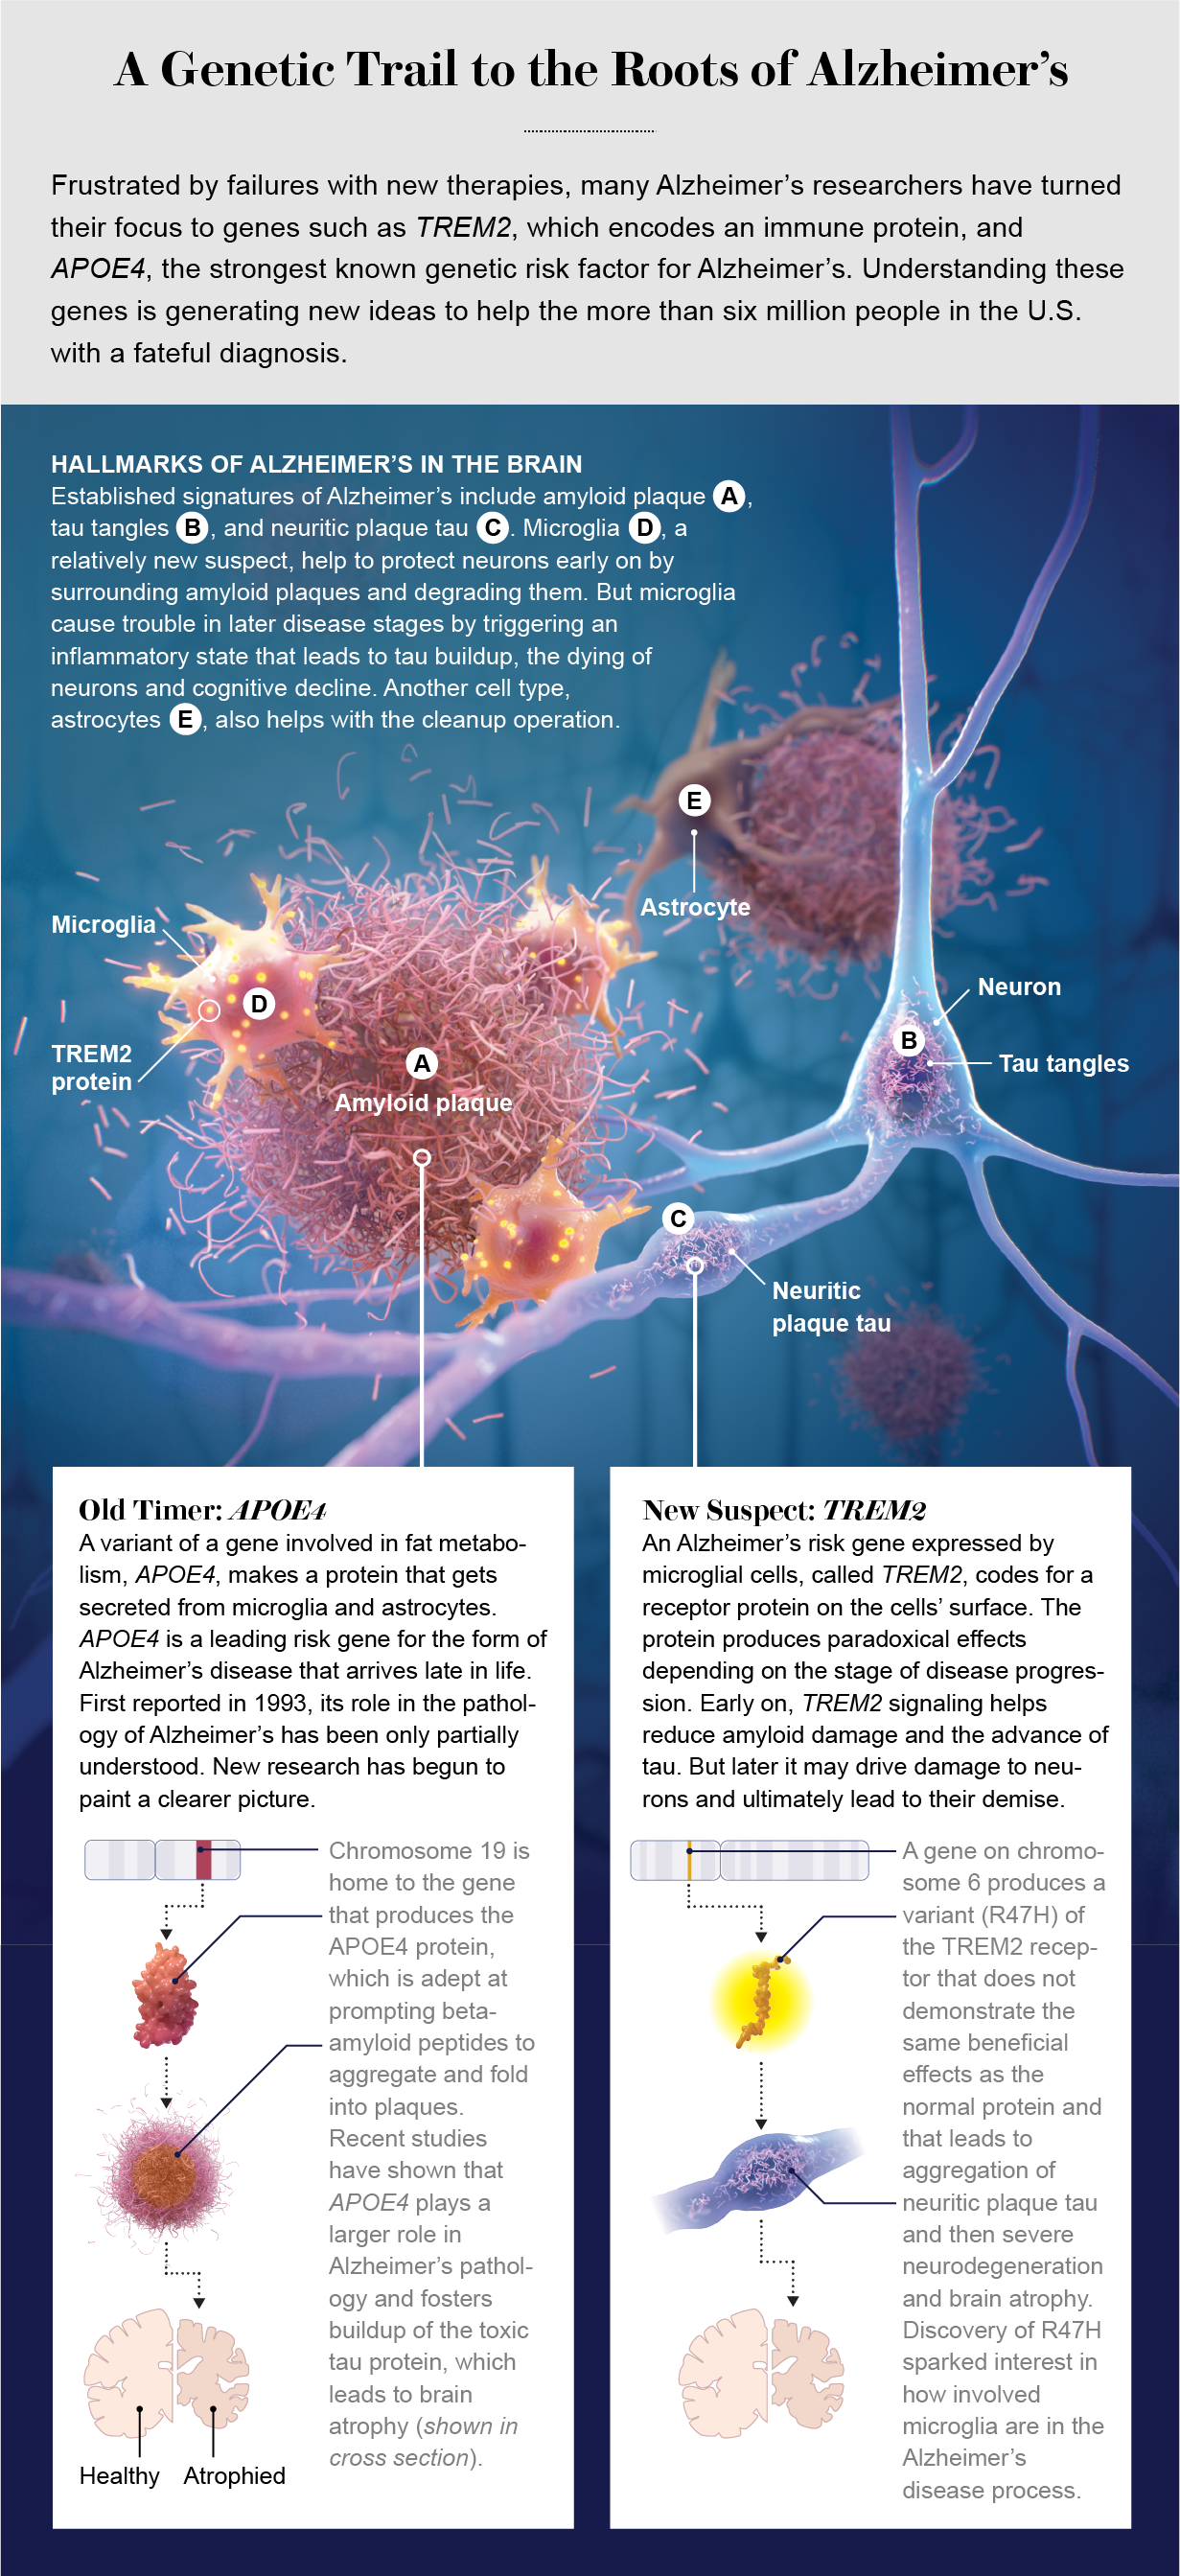 Hallmarks of Alzheimer's: tau tangles, neuritic plaque tau, amyloid plaques and microglia clusters.